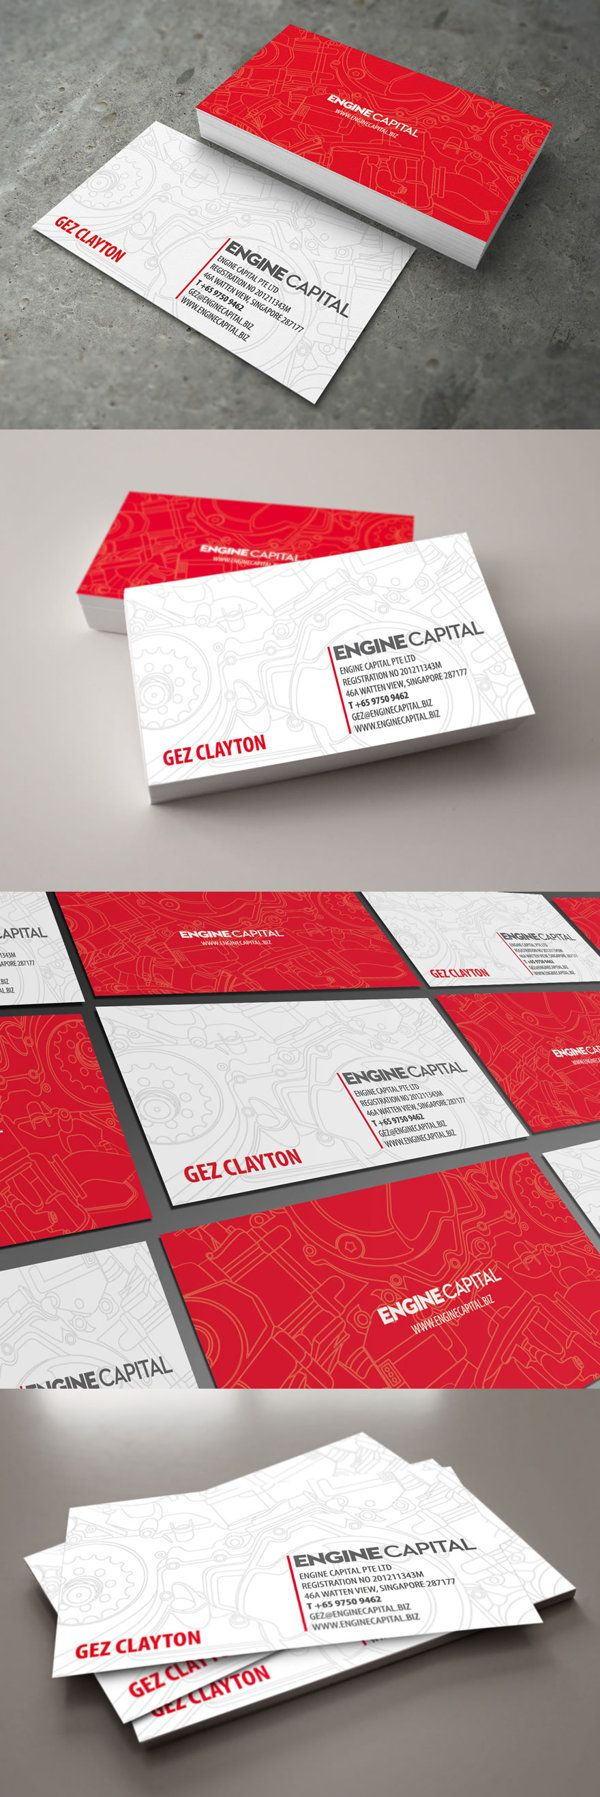 67 best business cards images on pinterest business cards engine capital business card by lemongraphic via behance magicingreecefo Gallery